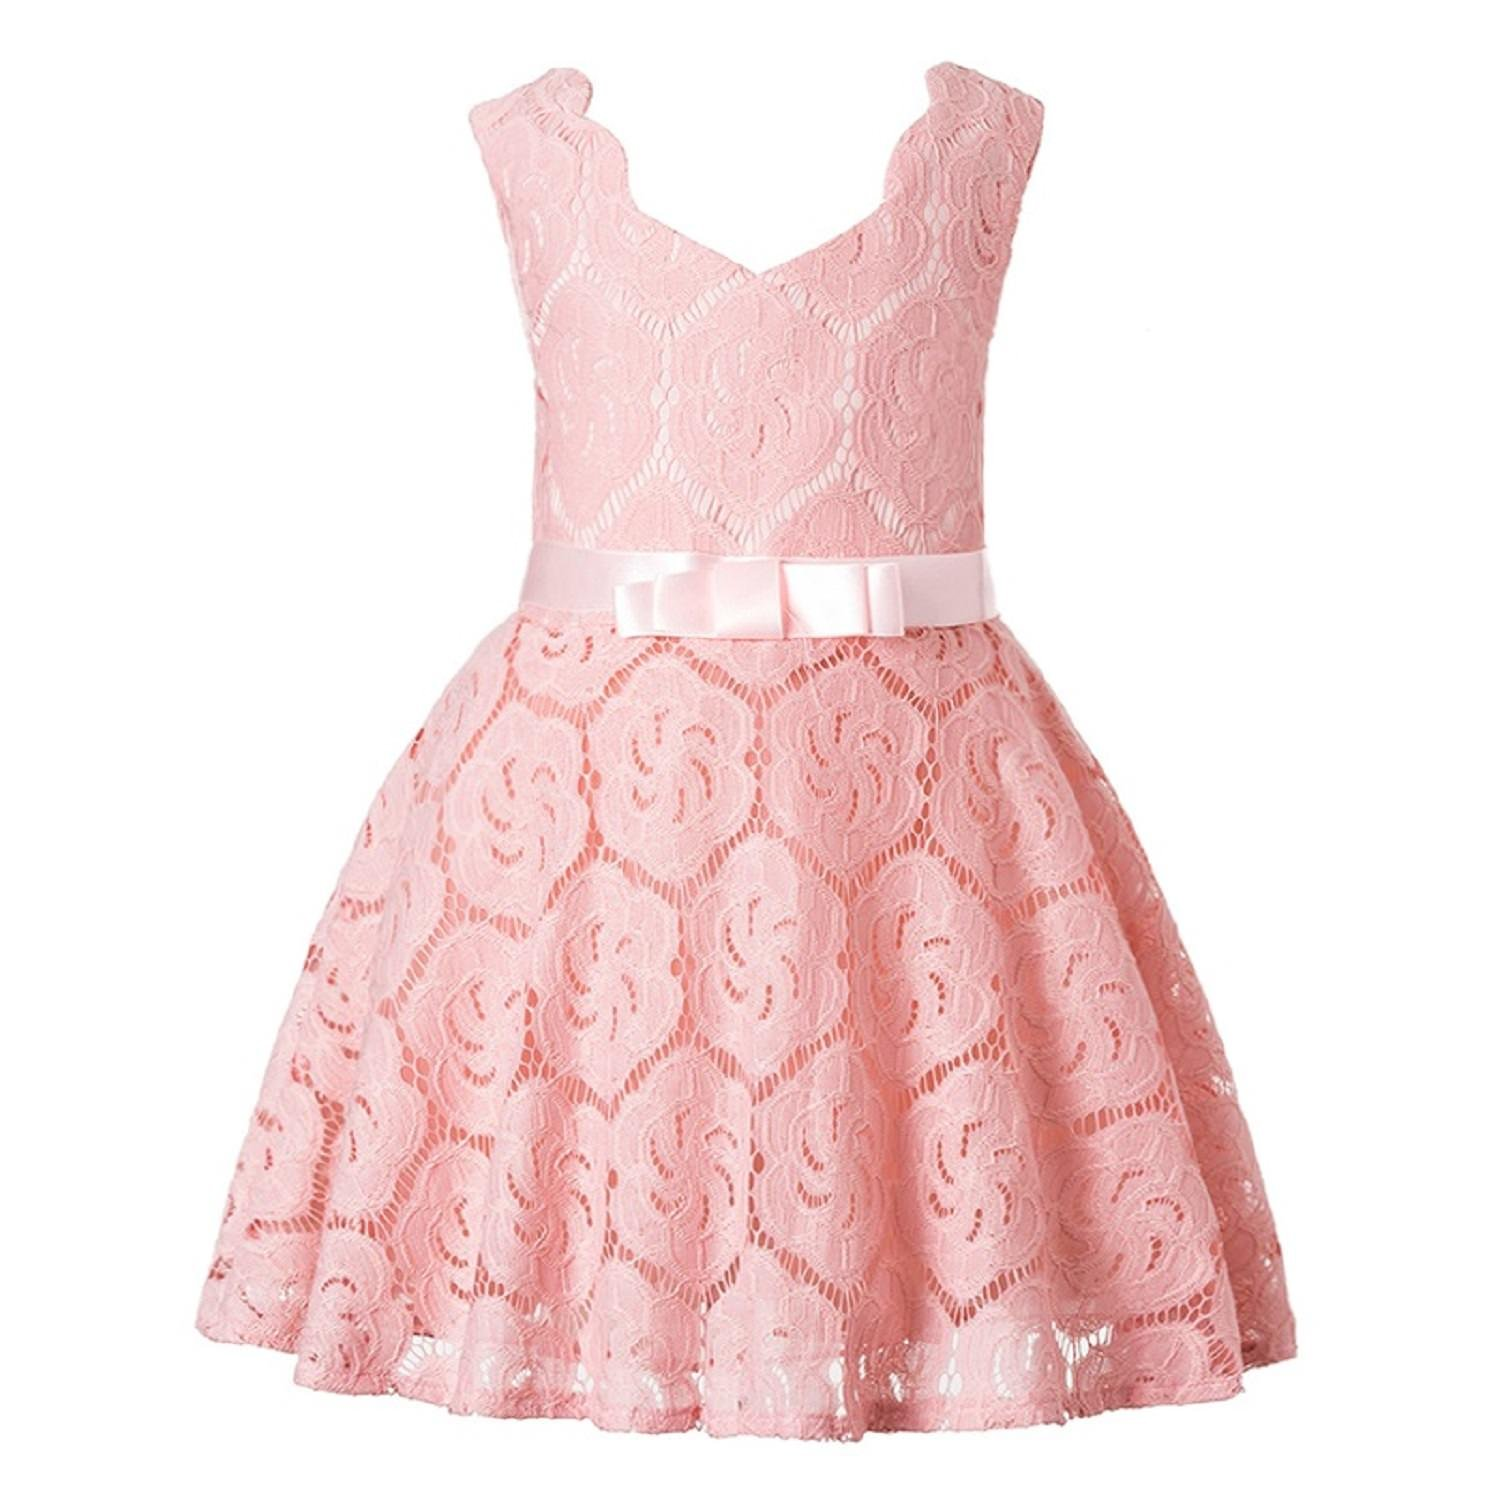 c4ec5f8027b1 SOFYANA Baby - Girl s Polyester Flower lace Kids Frocks Birthday Dress for  Girls Peach Knee Length Frock  Amazon.in  Clothing   Accessories